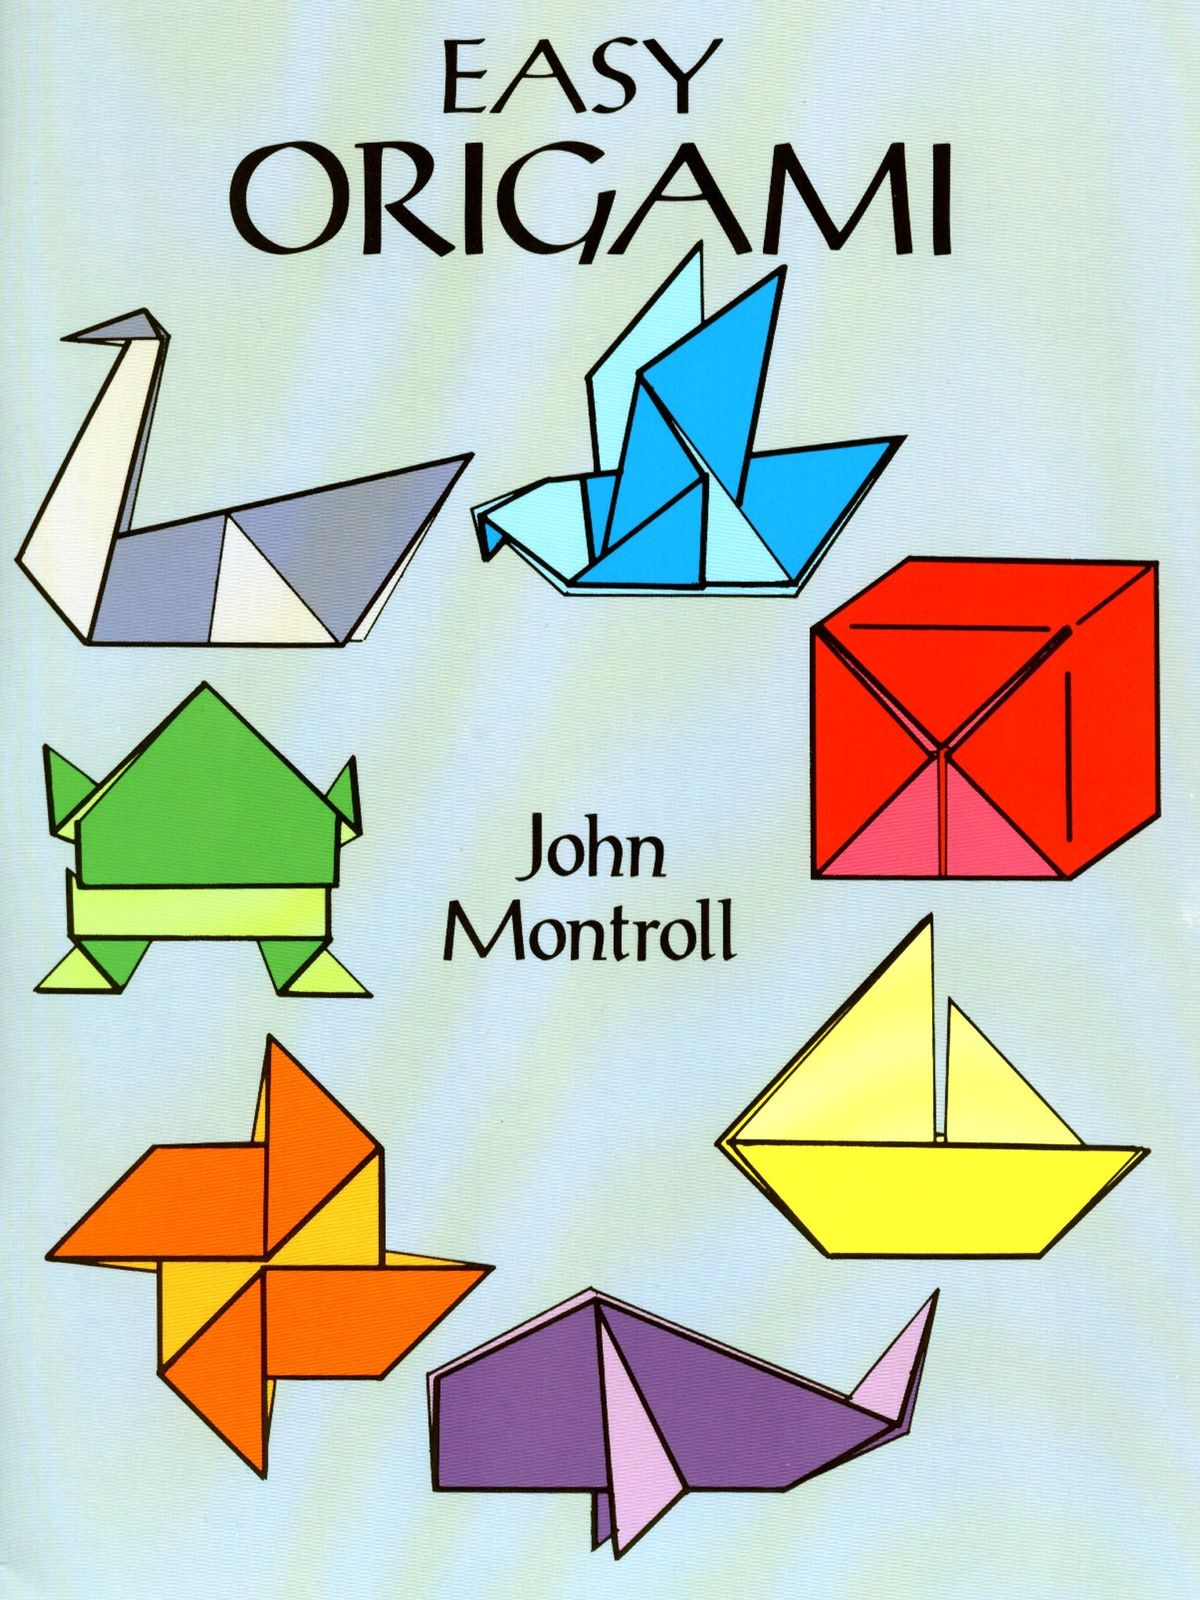 Easy Origami | MisterArt.com - photo#25